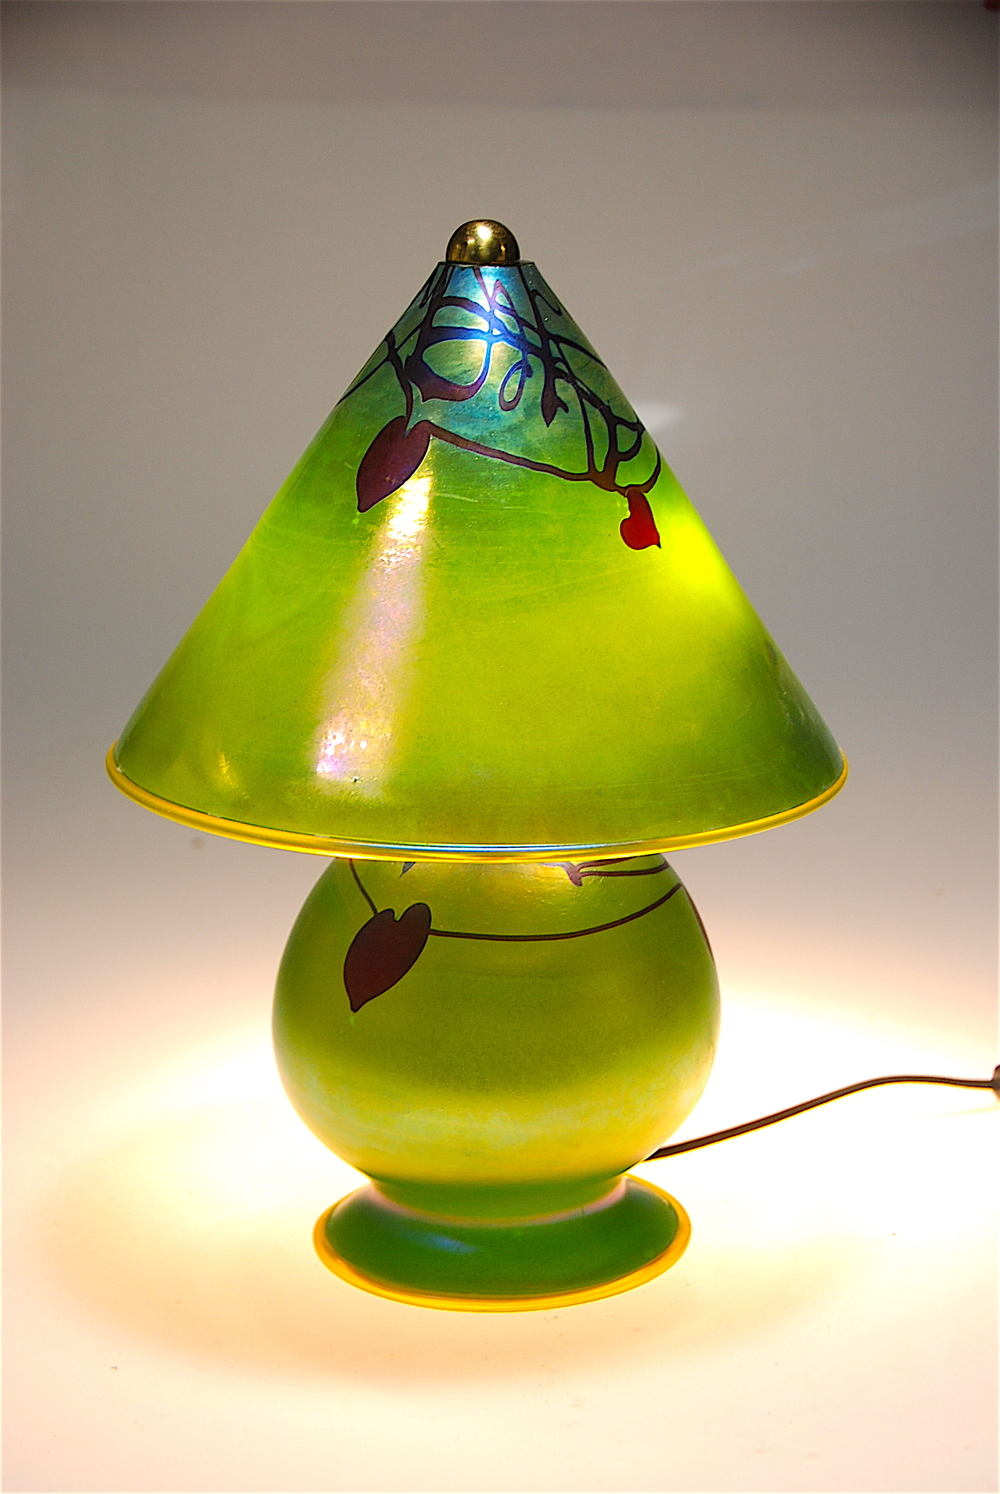 "Radical New Gem Lamp in Moss Luster16"" x 9.5""  Heart and vine decoration.  artist Rick Strini 2015-2016"